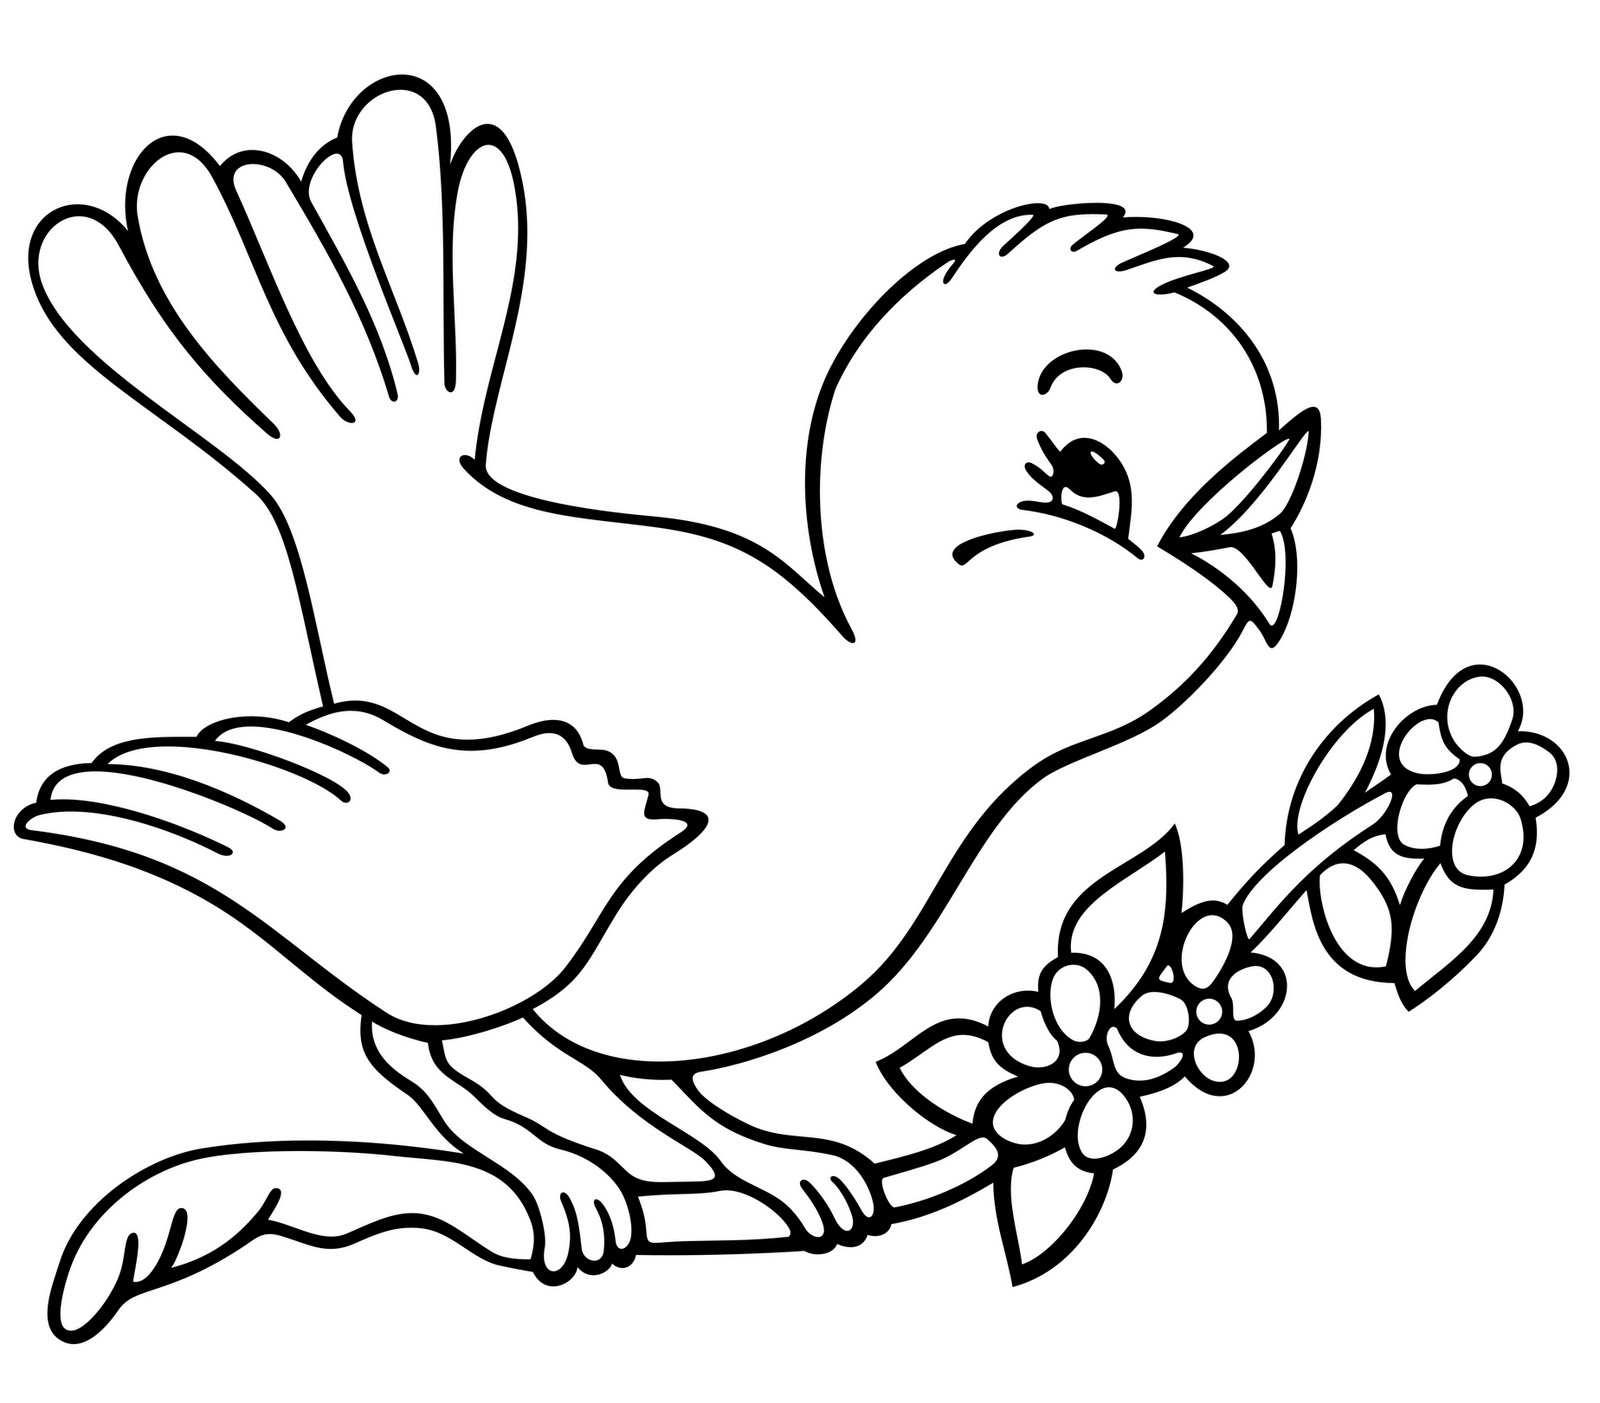 coloring pages of birds flying - simple bird free animal coloring sheet for kids